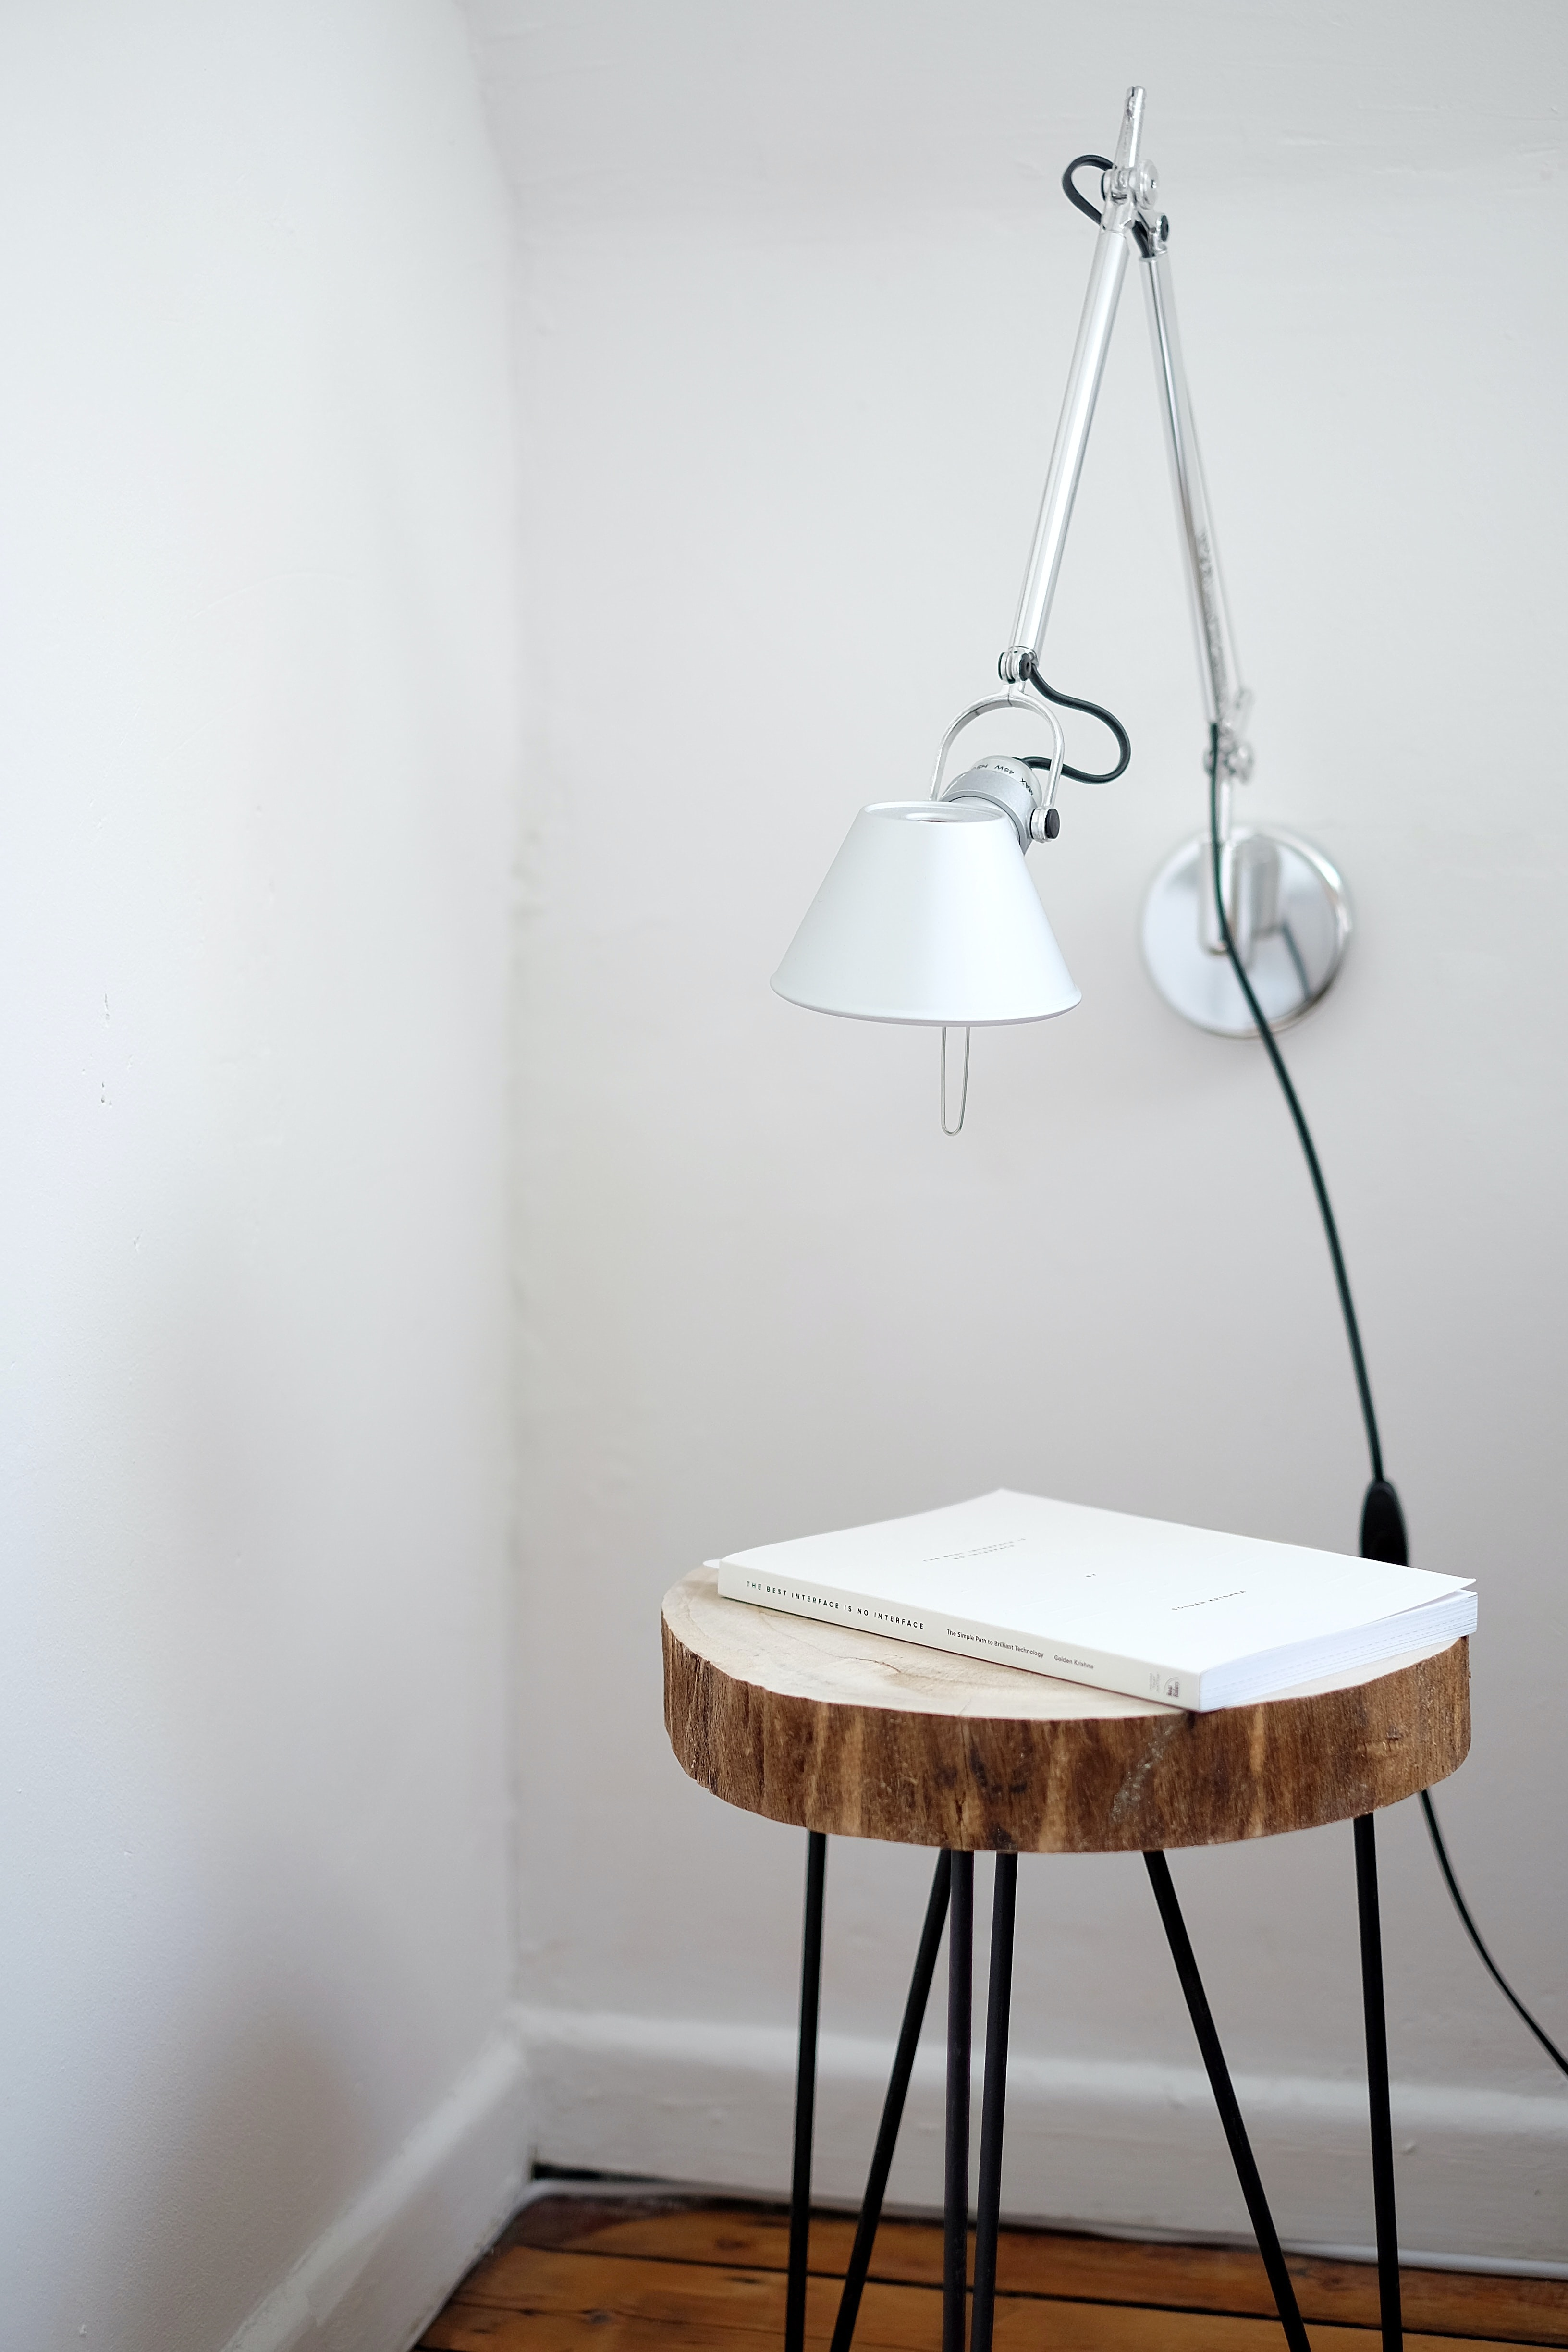 A wooden end table with a book on it and a lamp on the wall